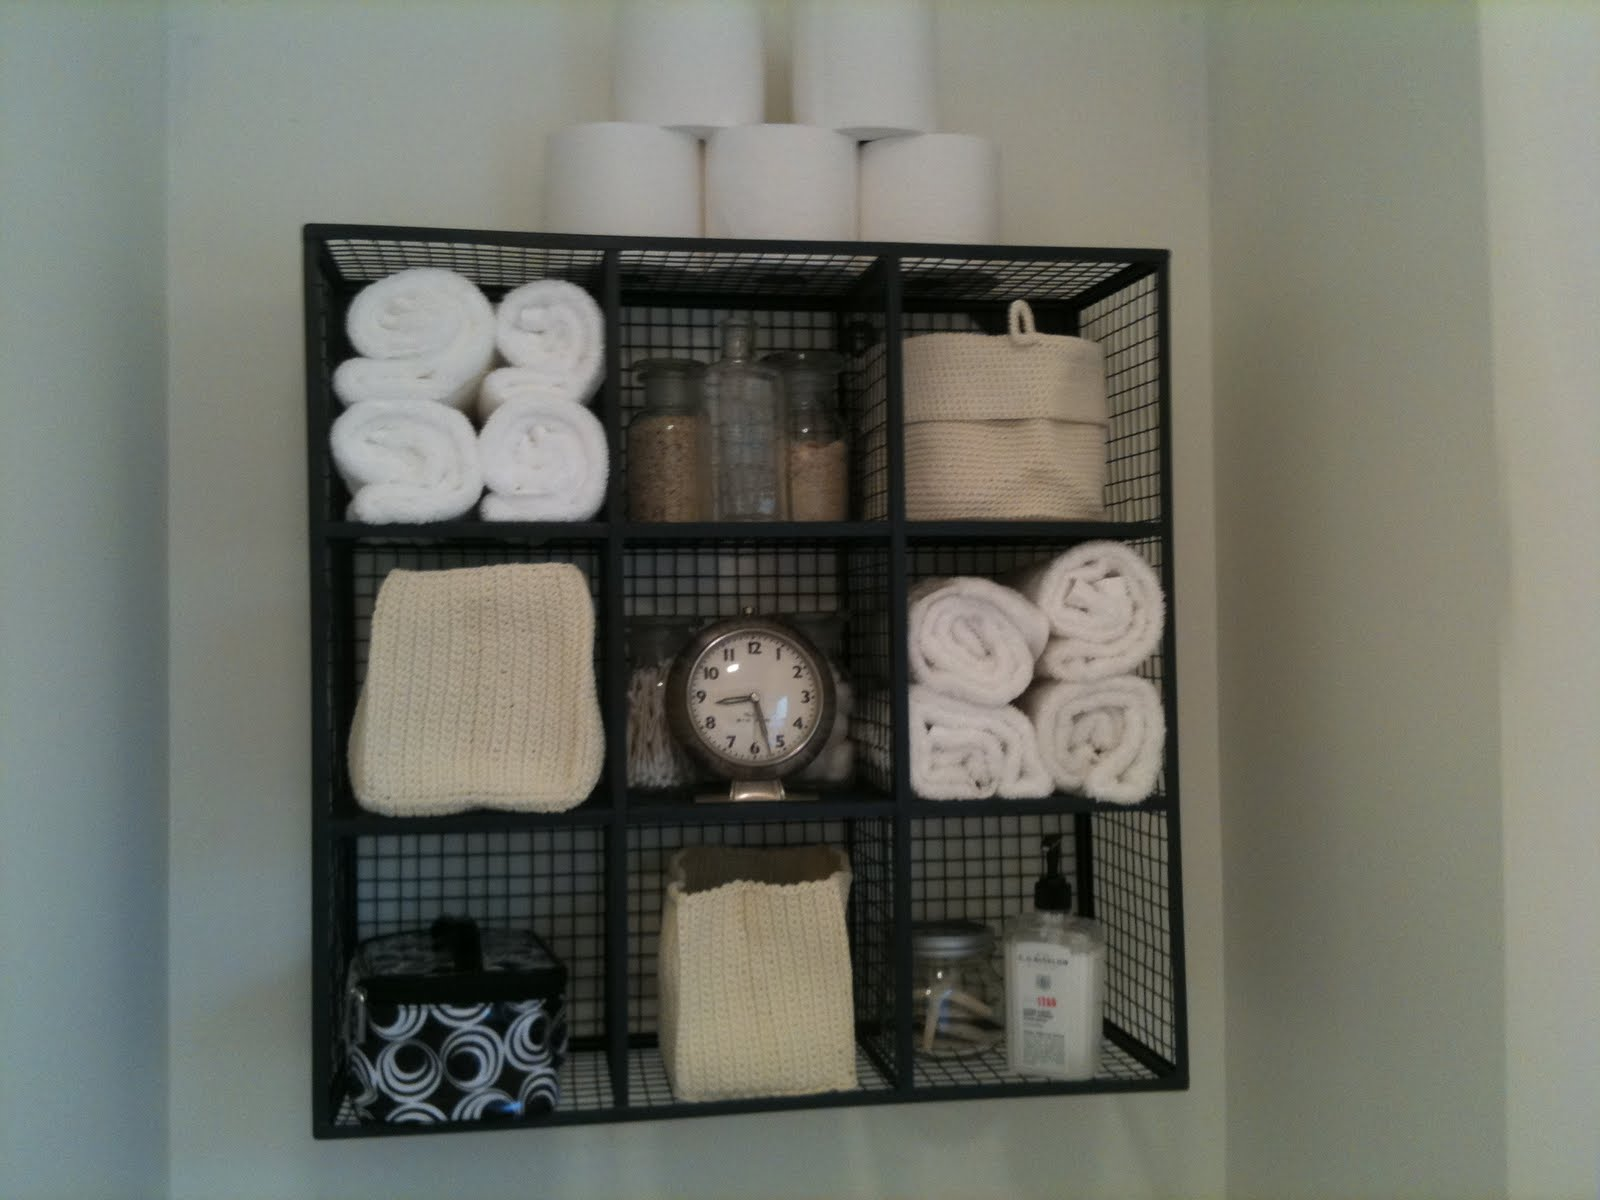 17 brilliant over the toilet storage ideas for Bathroom cabinet organizer ideas